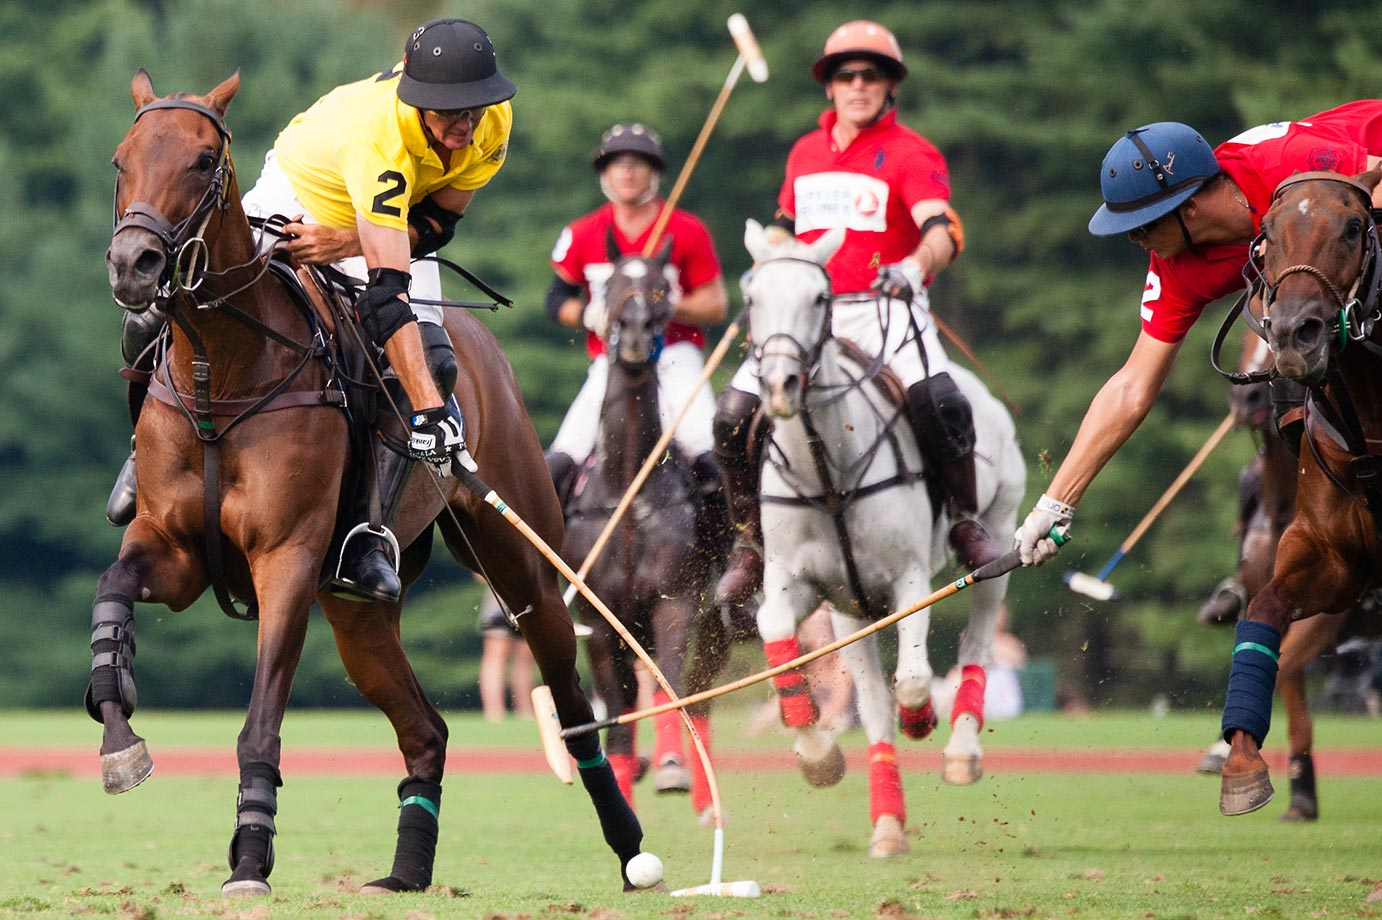 Turkish Airlines' Joaquin Panelo hooks McLaren's Nick Manifold's mallet during the 2015 East Coast Open Tournament.